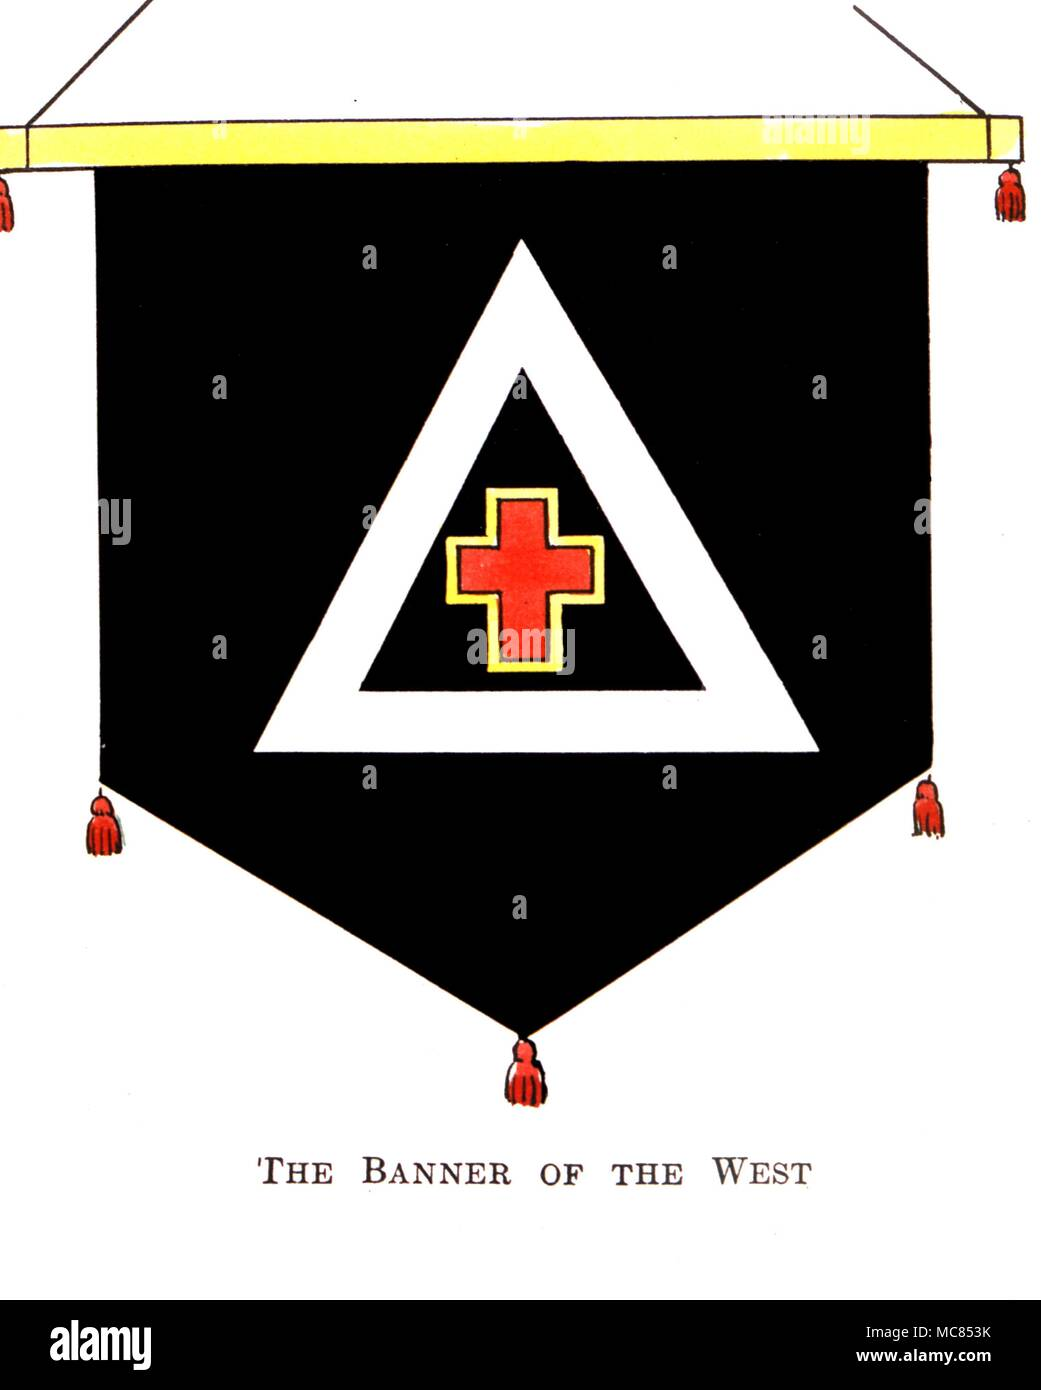 The Banner of the West Symbols from 'The Golden Dawn' an account of the Teachings, Rites and Ceremonies of the Order of the Golden Dawn' by Israel Regardie, 1937 - Stock Image